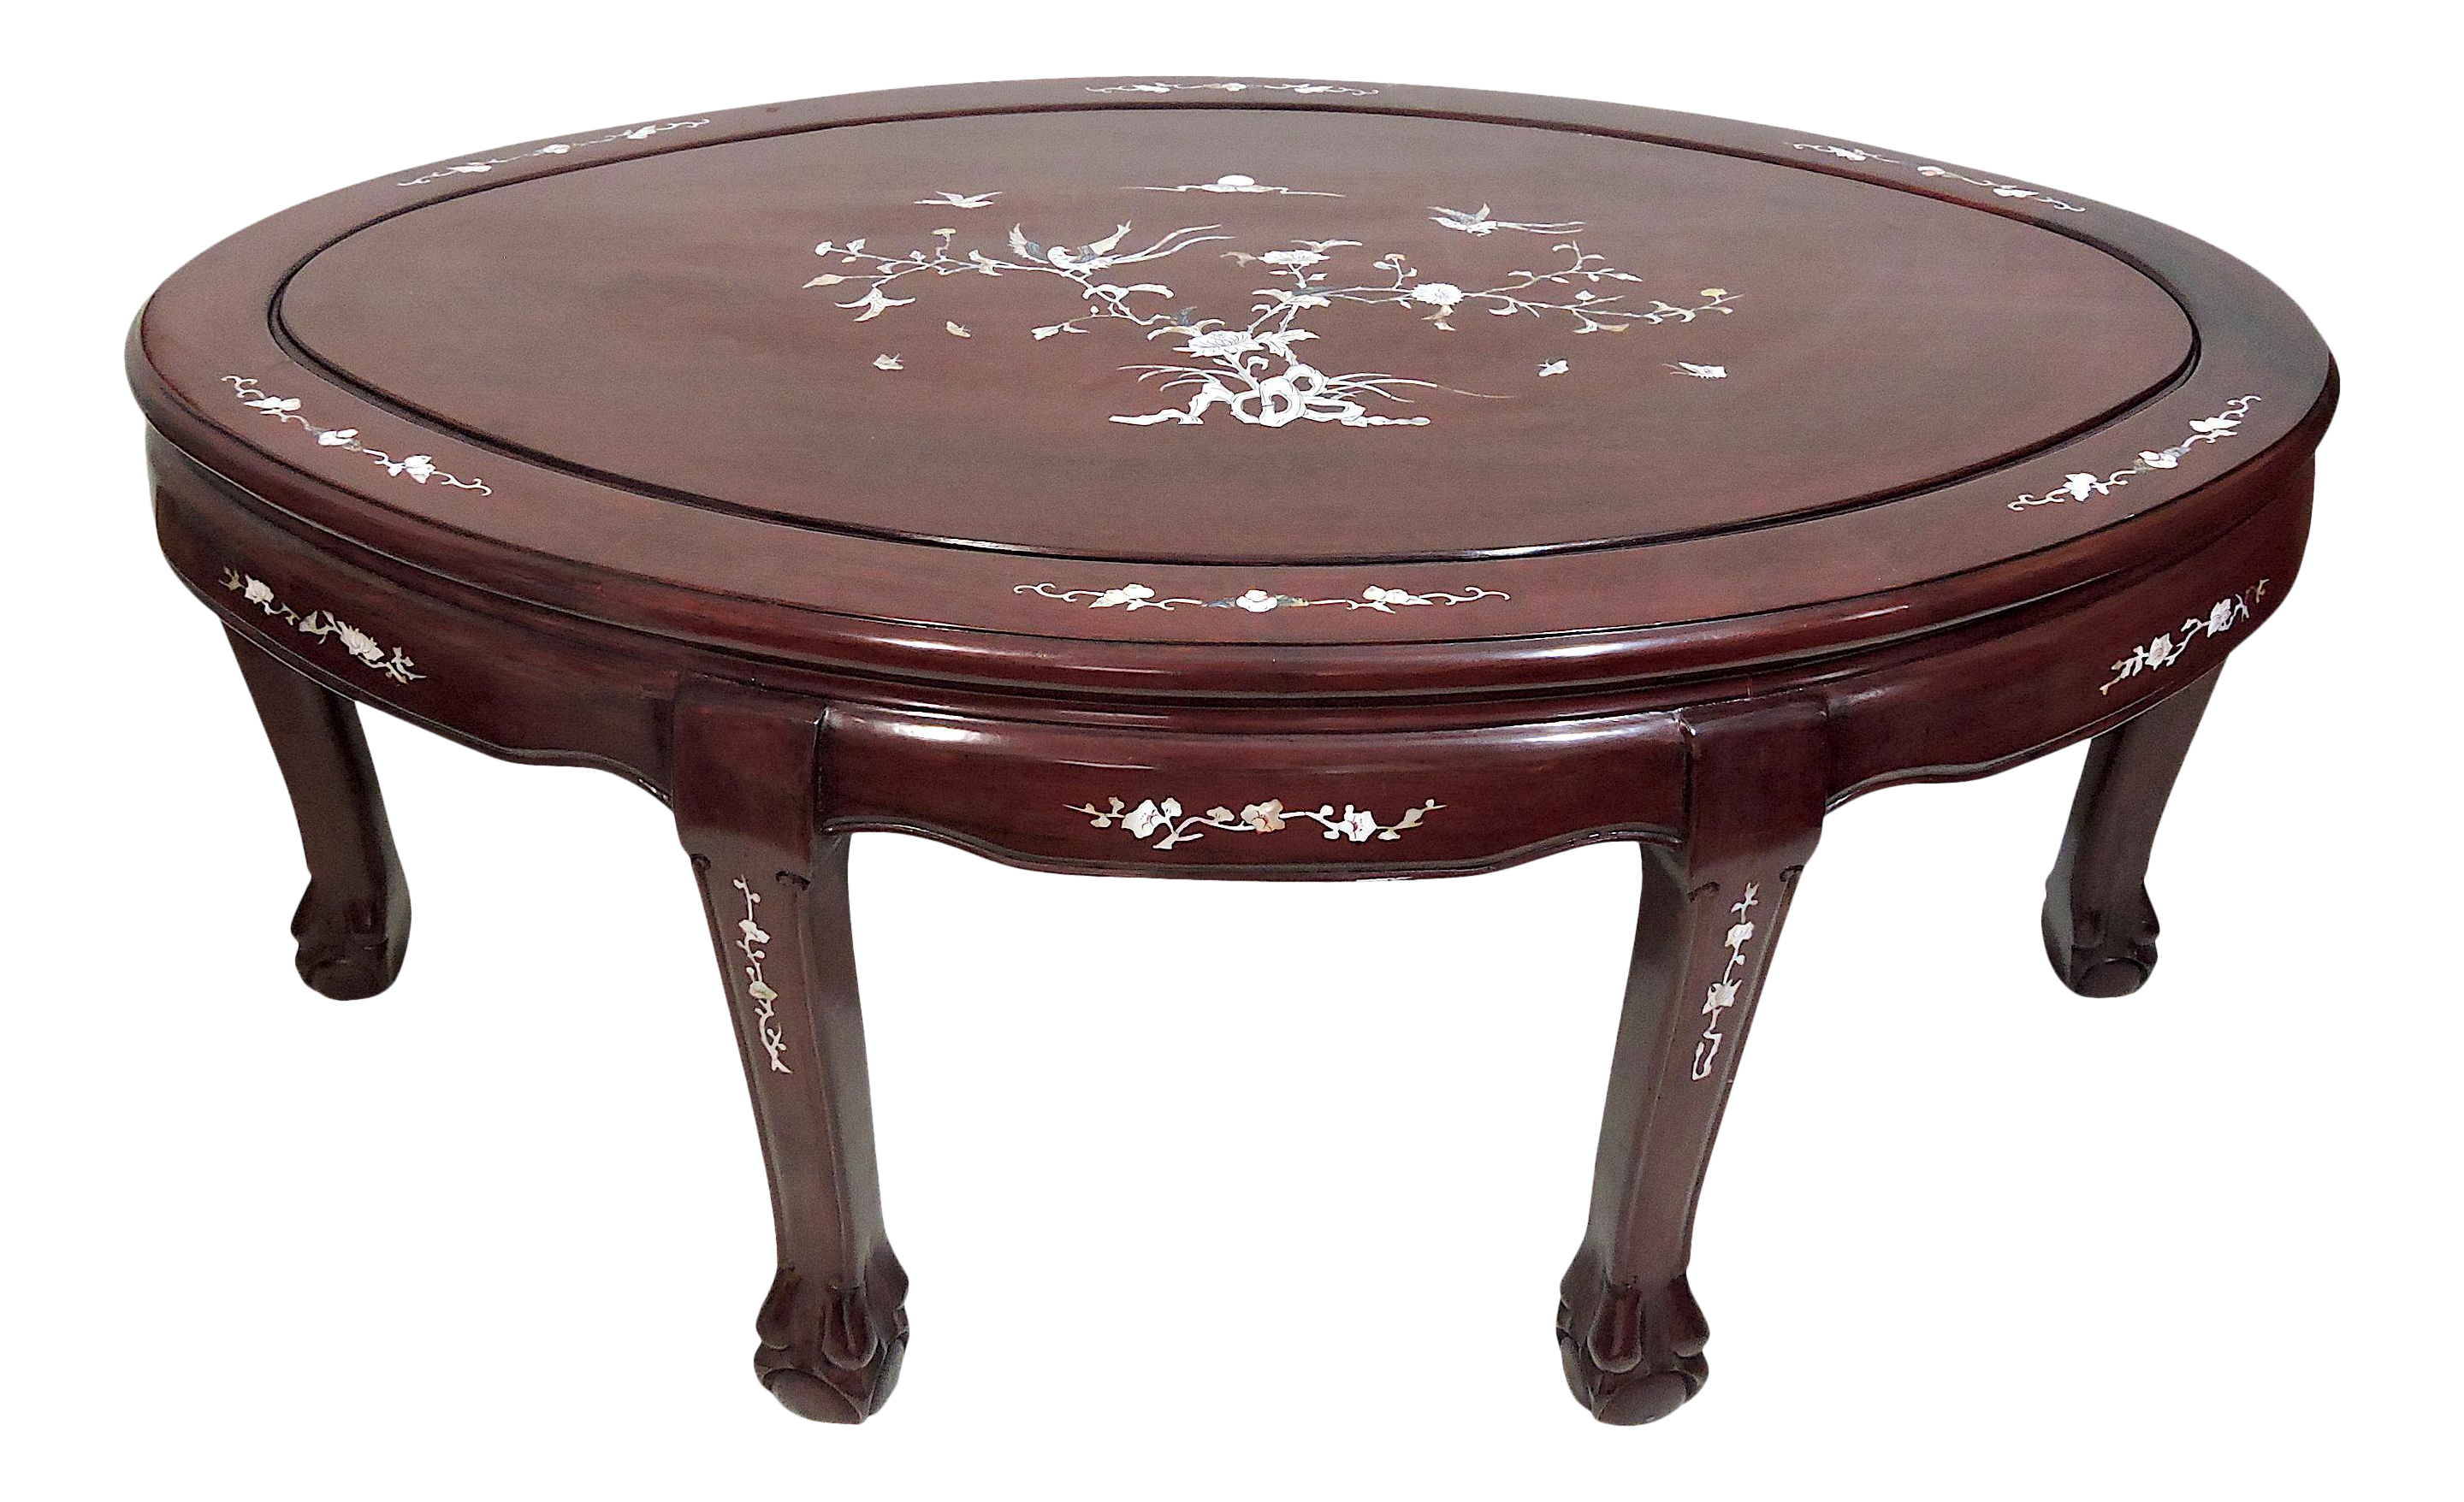 Pin By Neha On Indian Art Coffee Table Oval Coffee Tables Table [ 1756 x 2880 Pixel ]